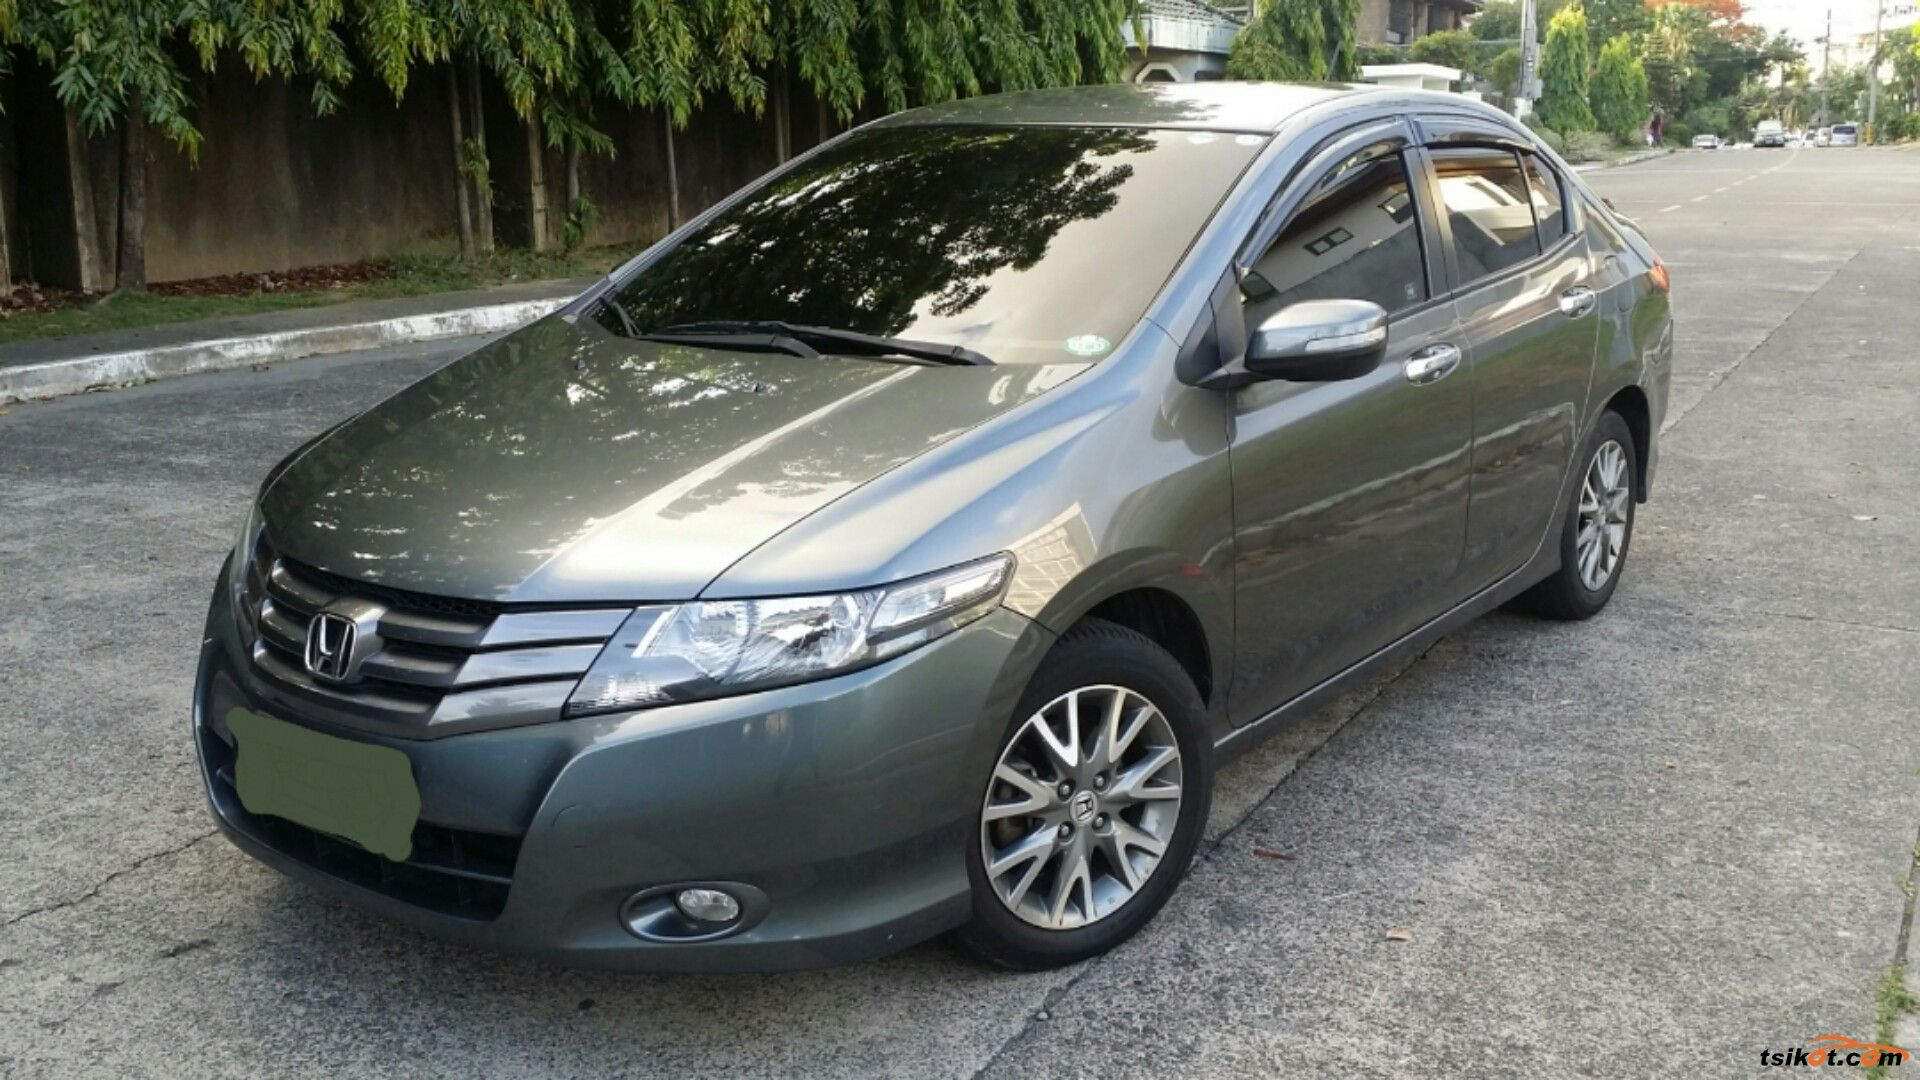 Honda City 2010 Car for Sale Metro Manila, Philippines